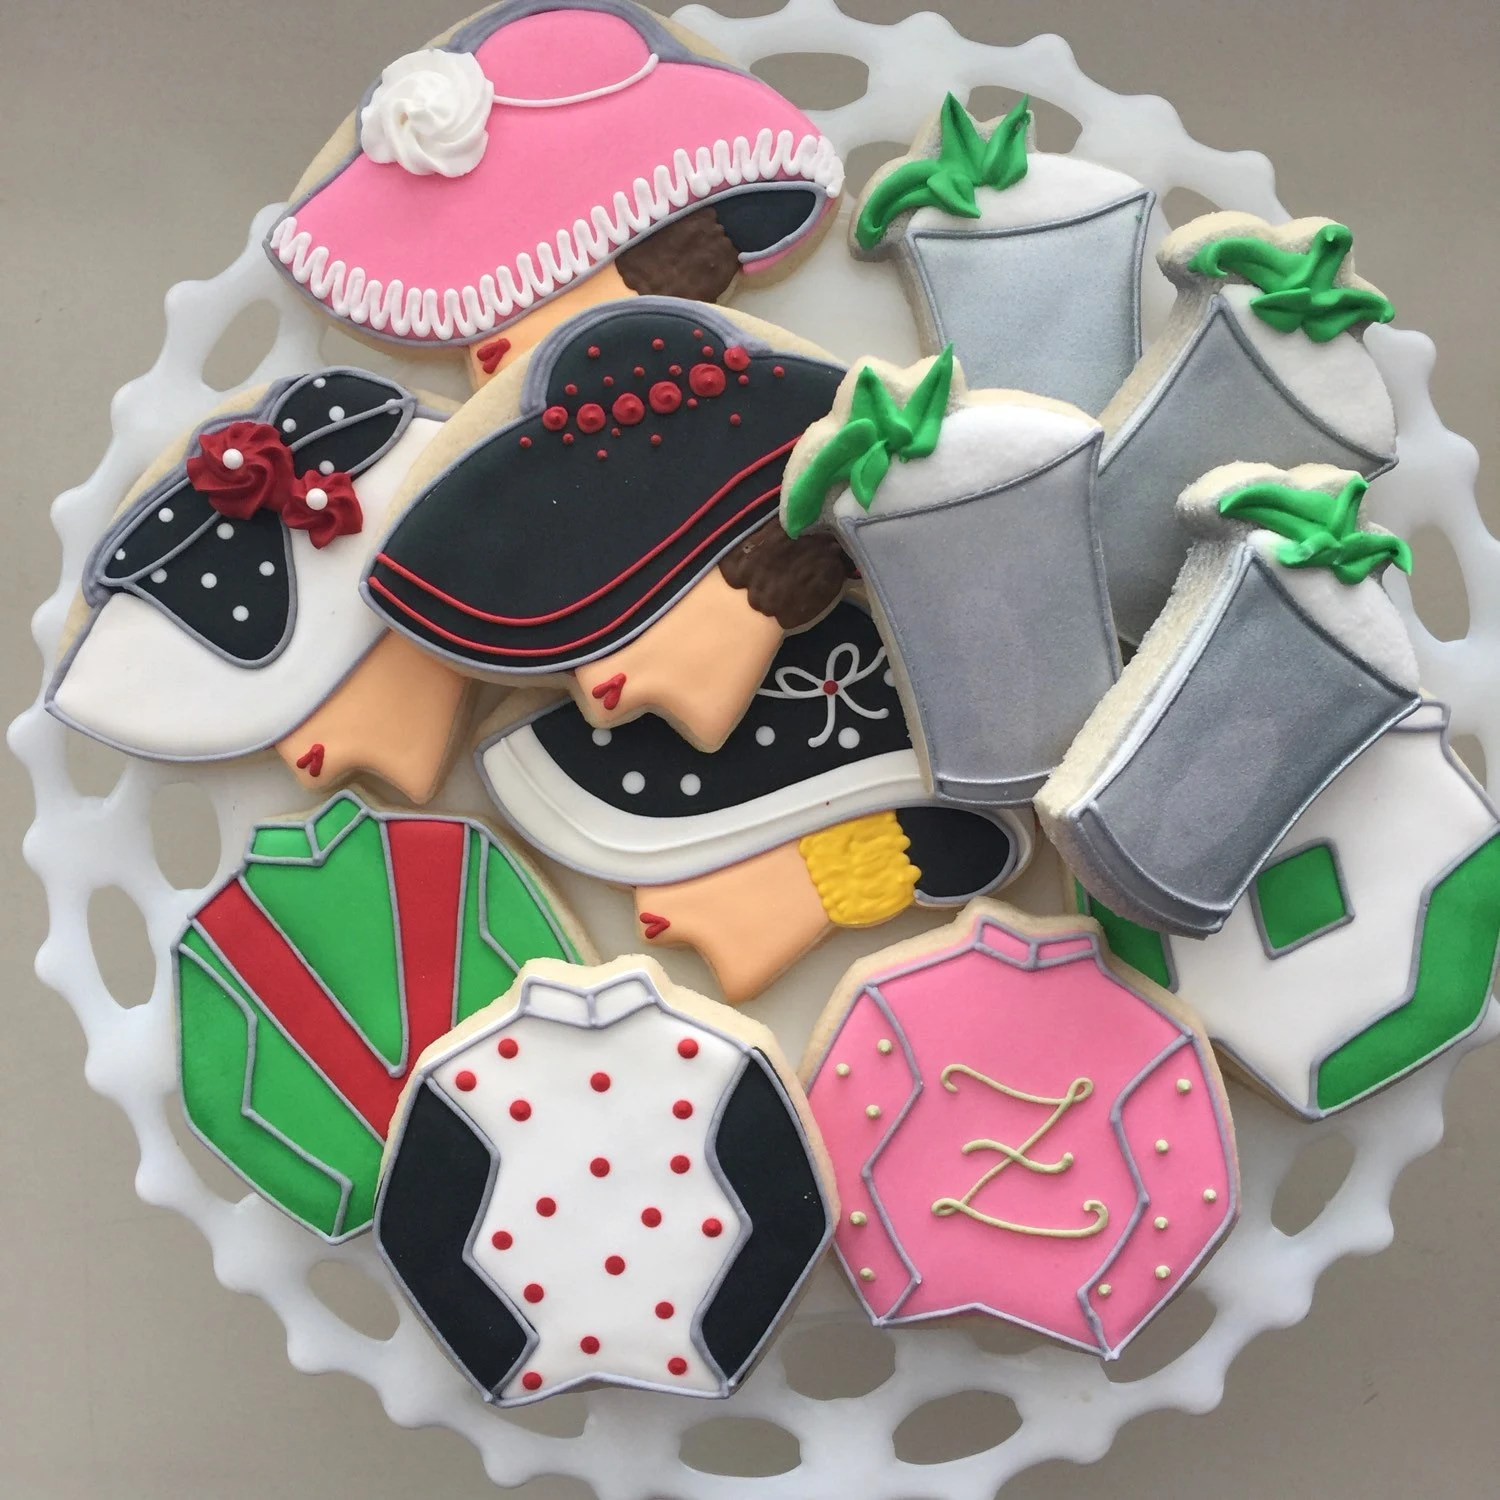 Kentucky Derby Favor Derby Party FavorDerby Cookie Favors